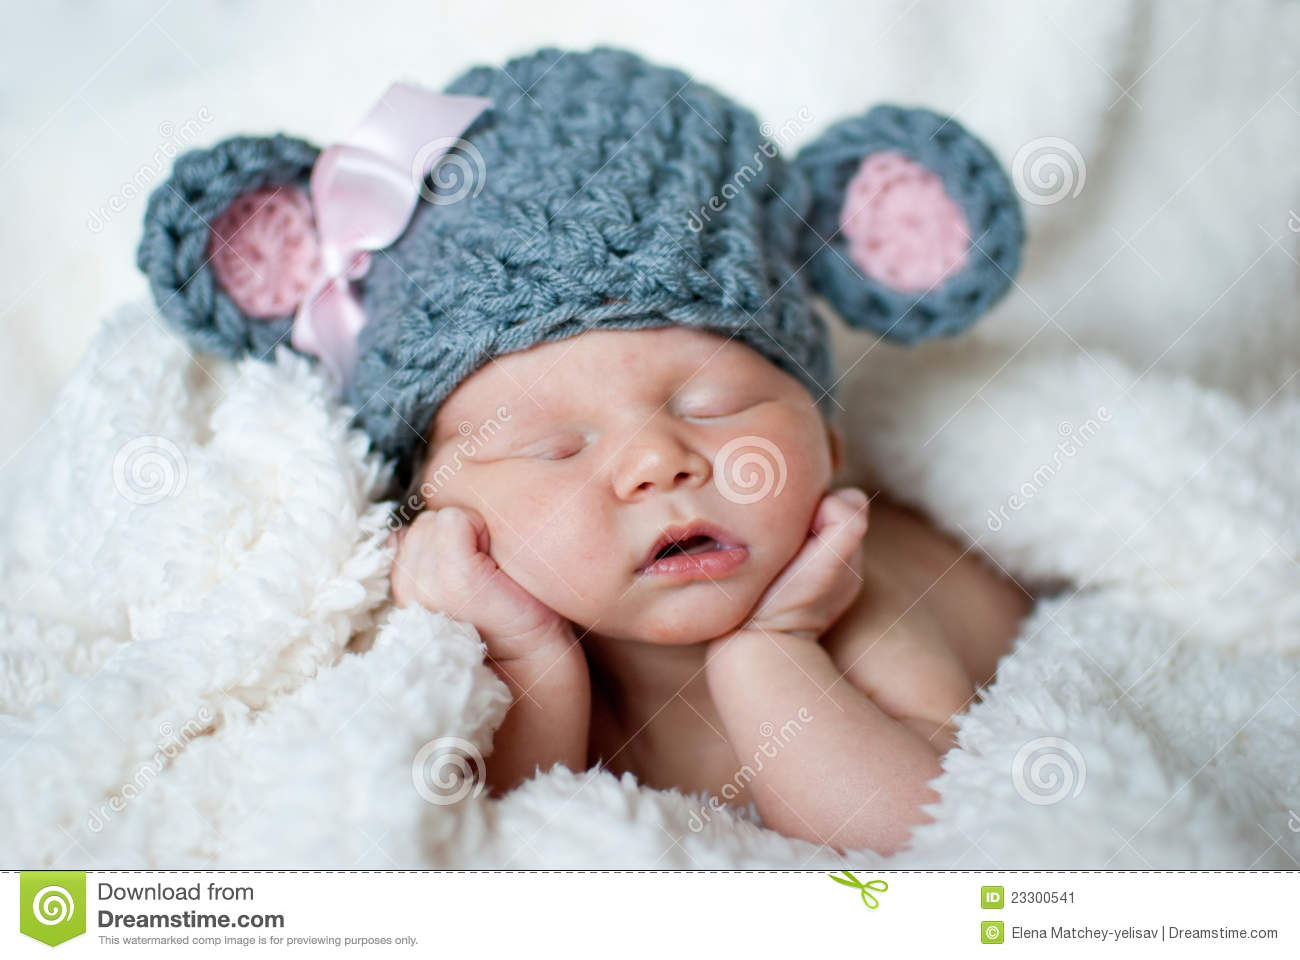 Cute Sleeping Baby Stock Image  Image: 23300541